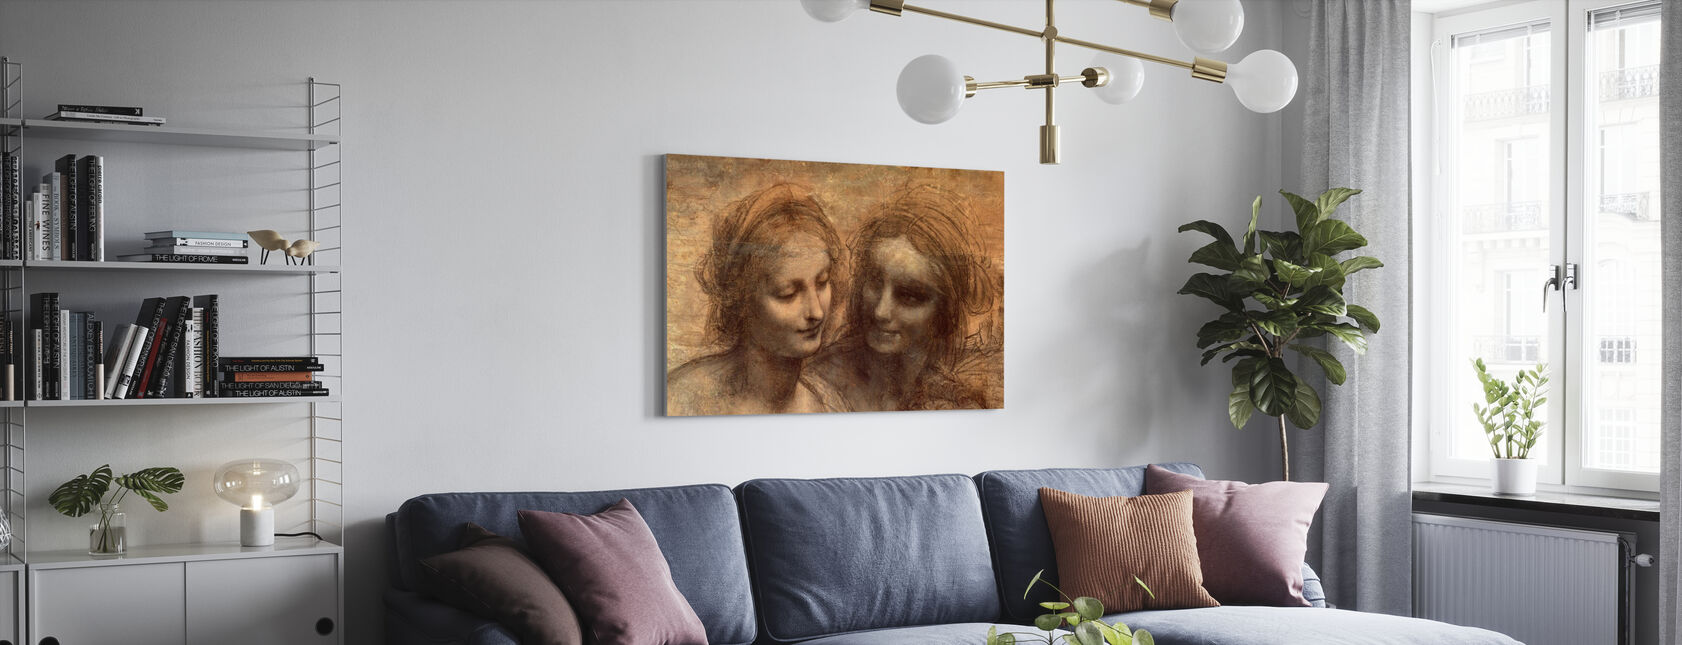 Virgin and Child - Leonardo da Vinci - Canvas print - Living Room